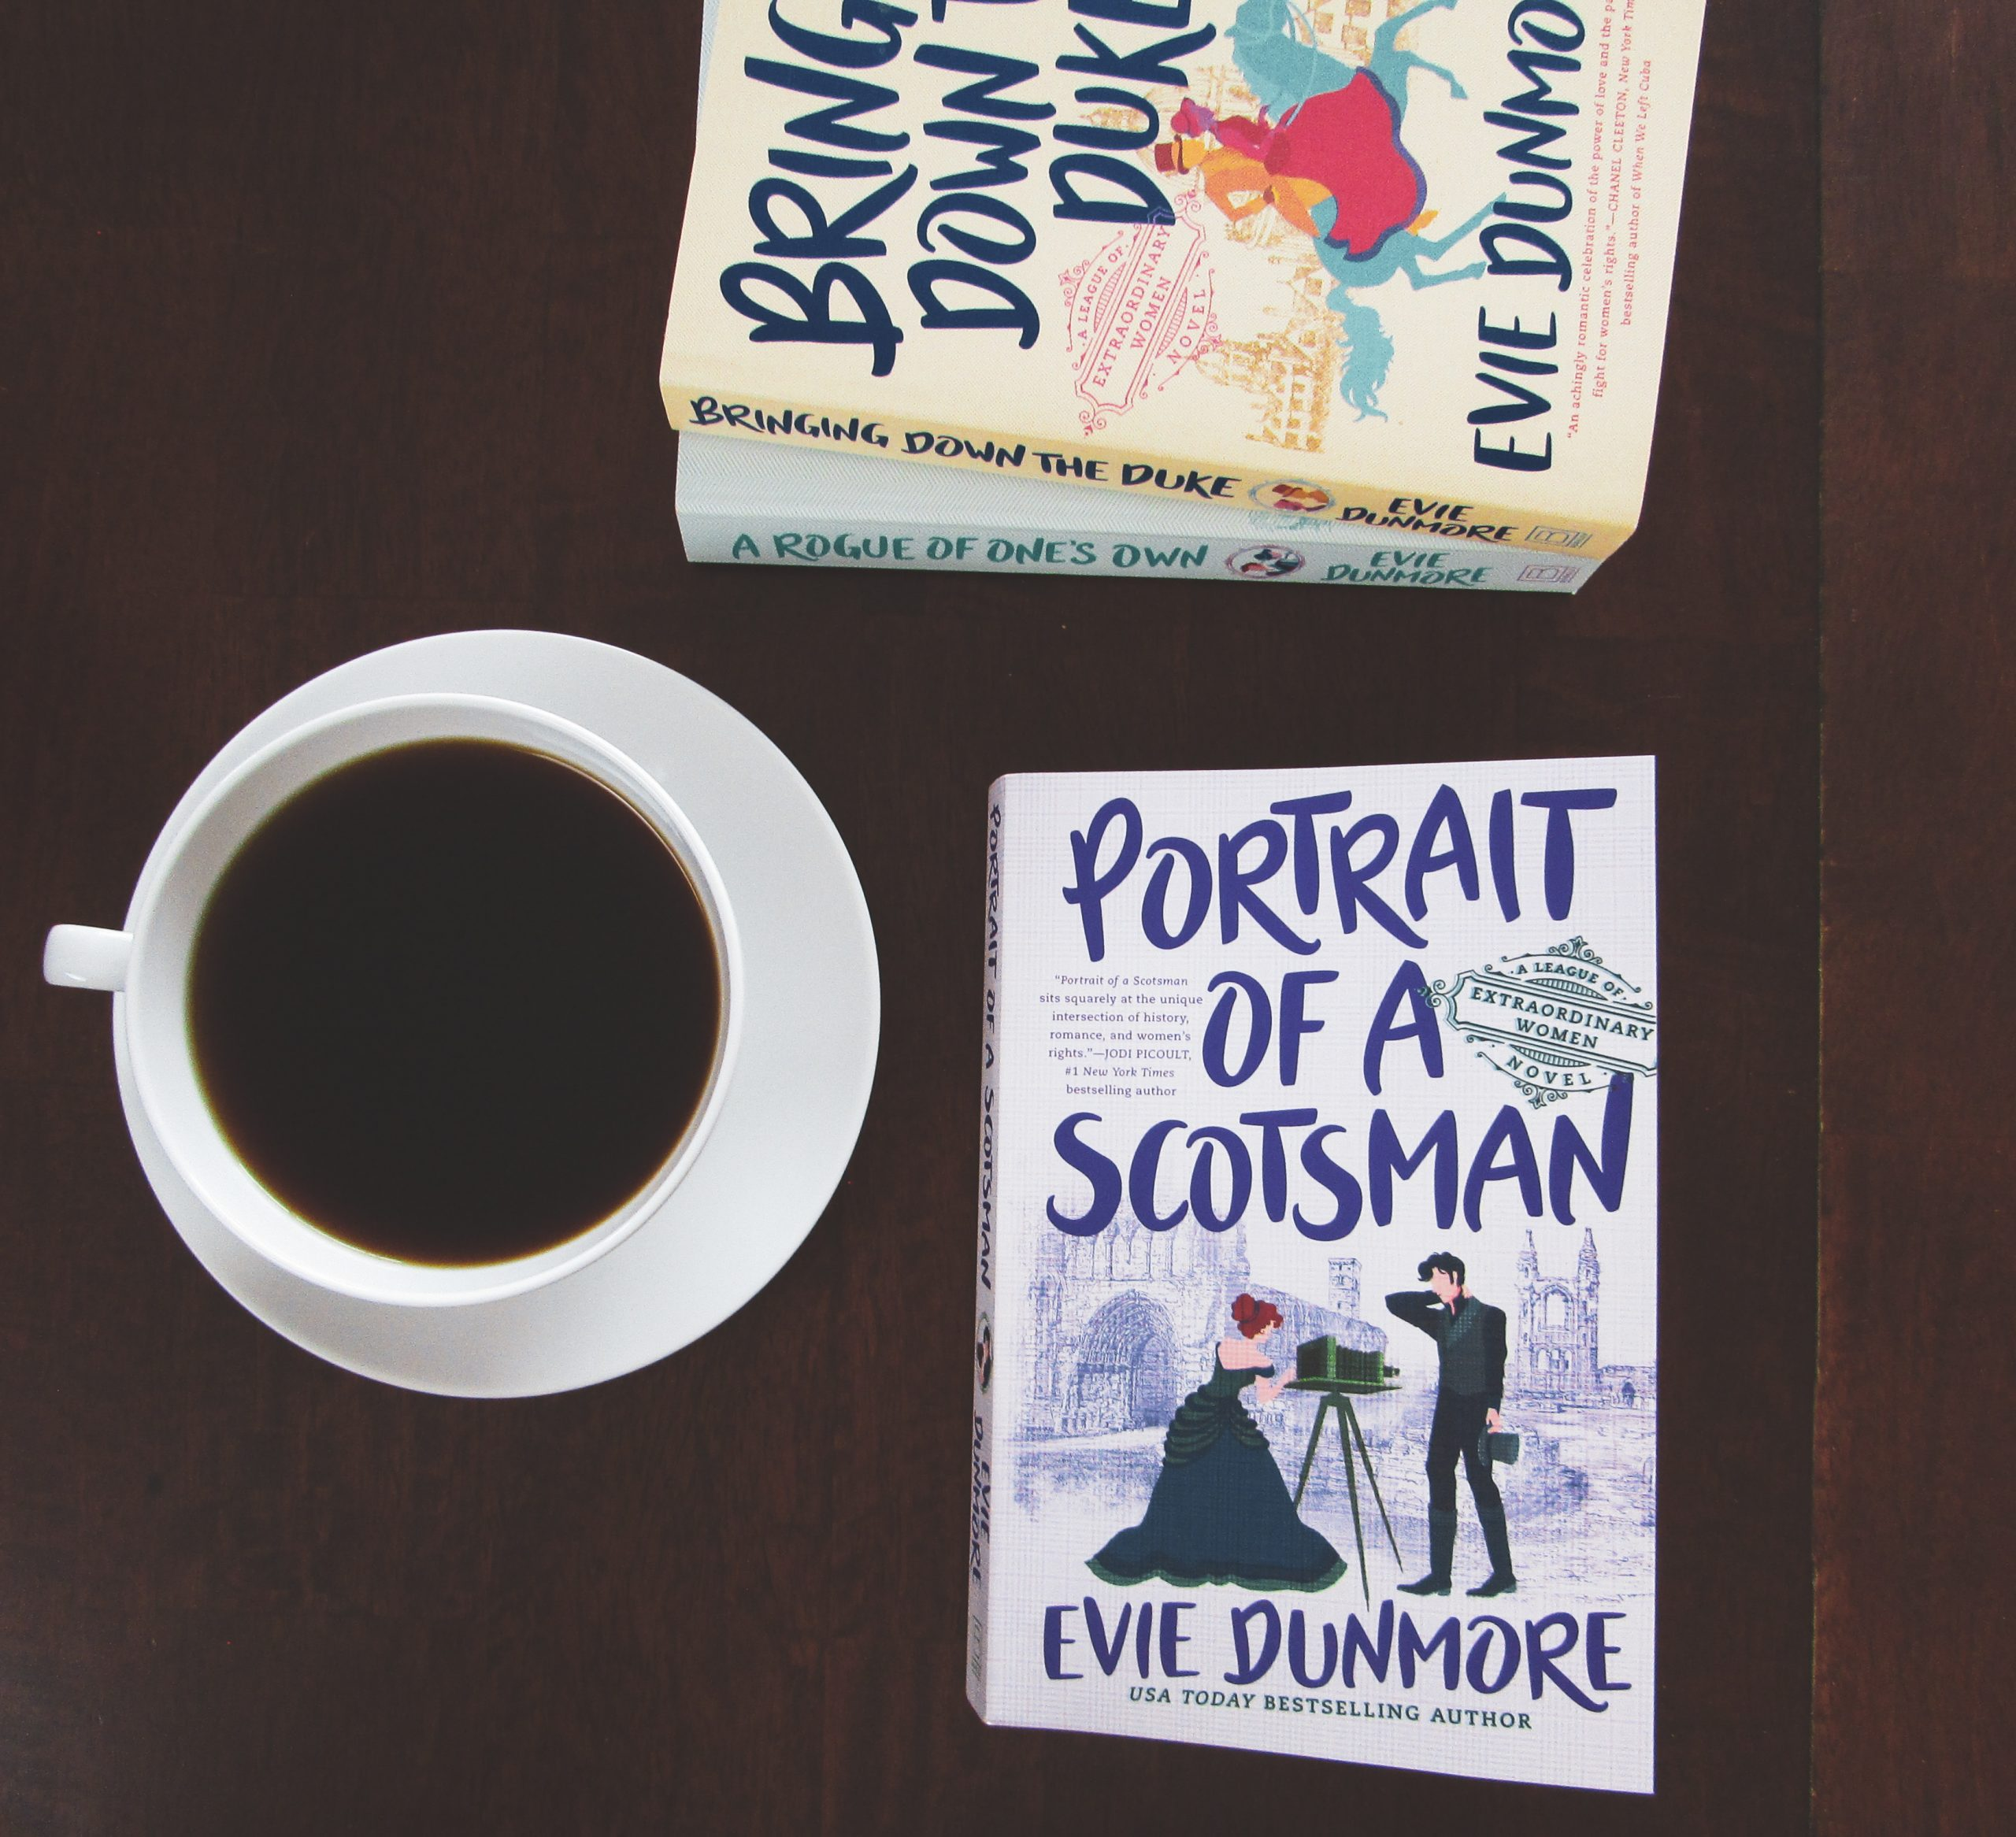 Read more about the article Portrait of a Scotsman by Evie Dunmore